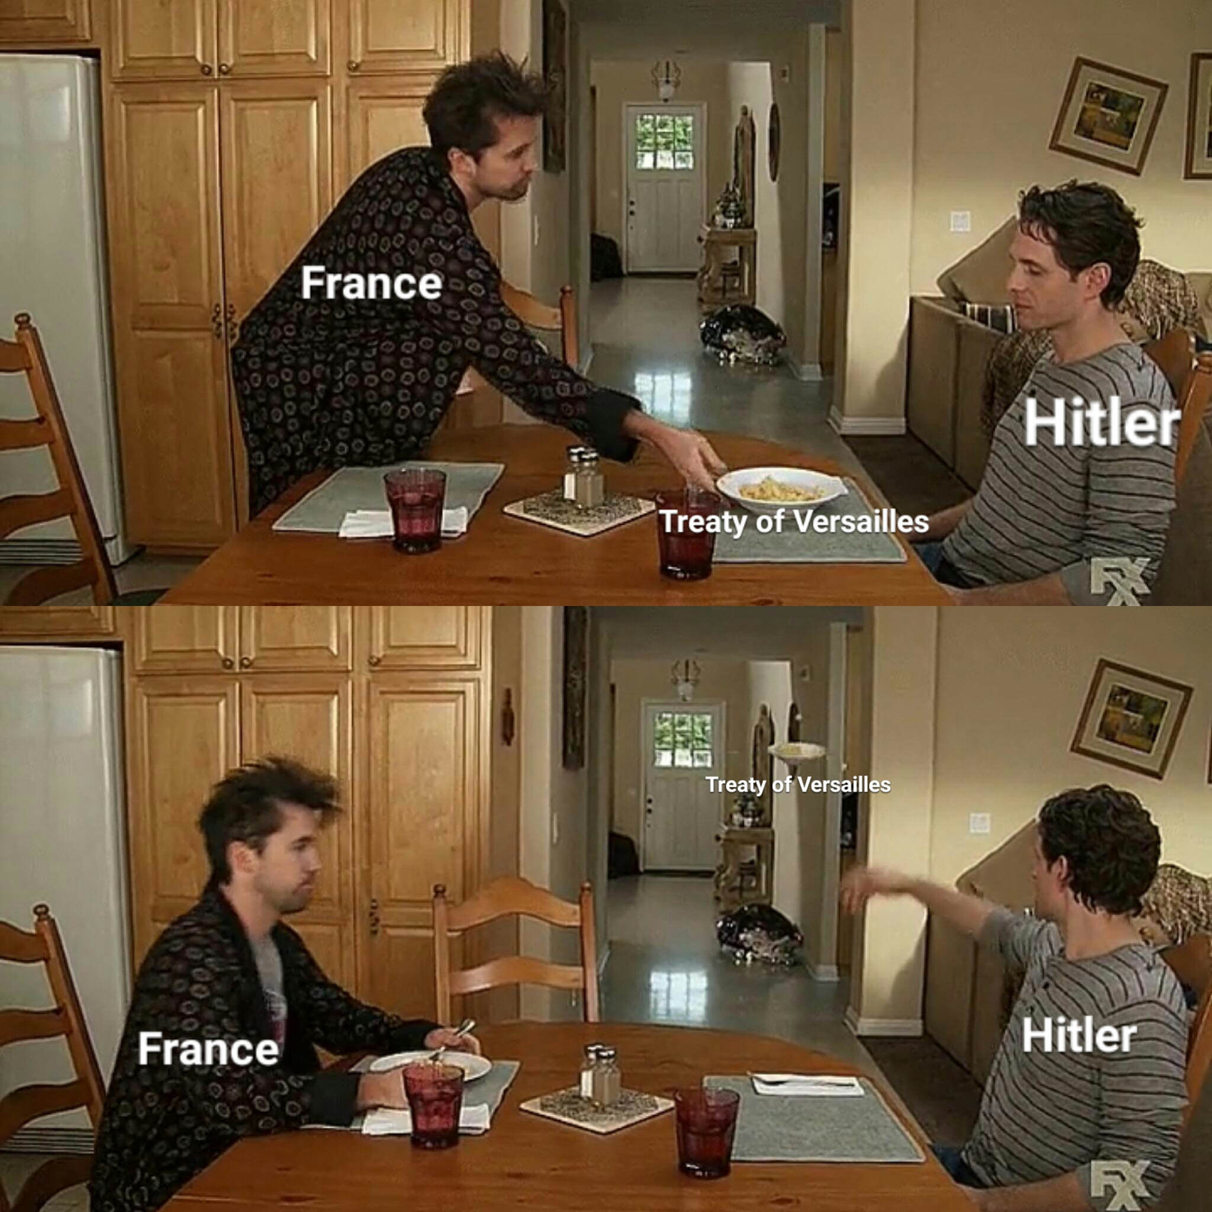 Fuck the traty of Versailles - meme